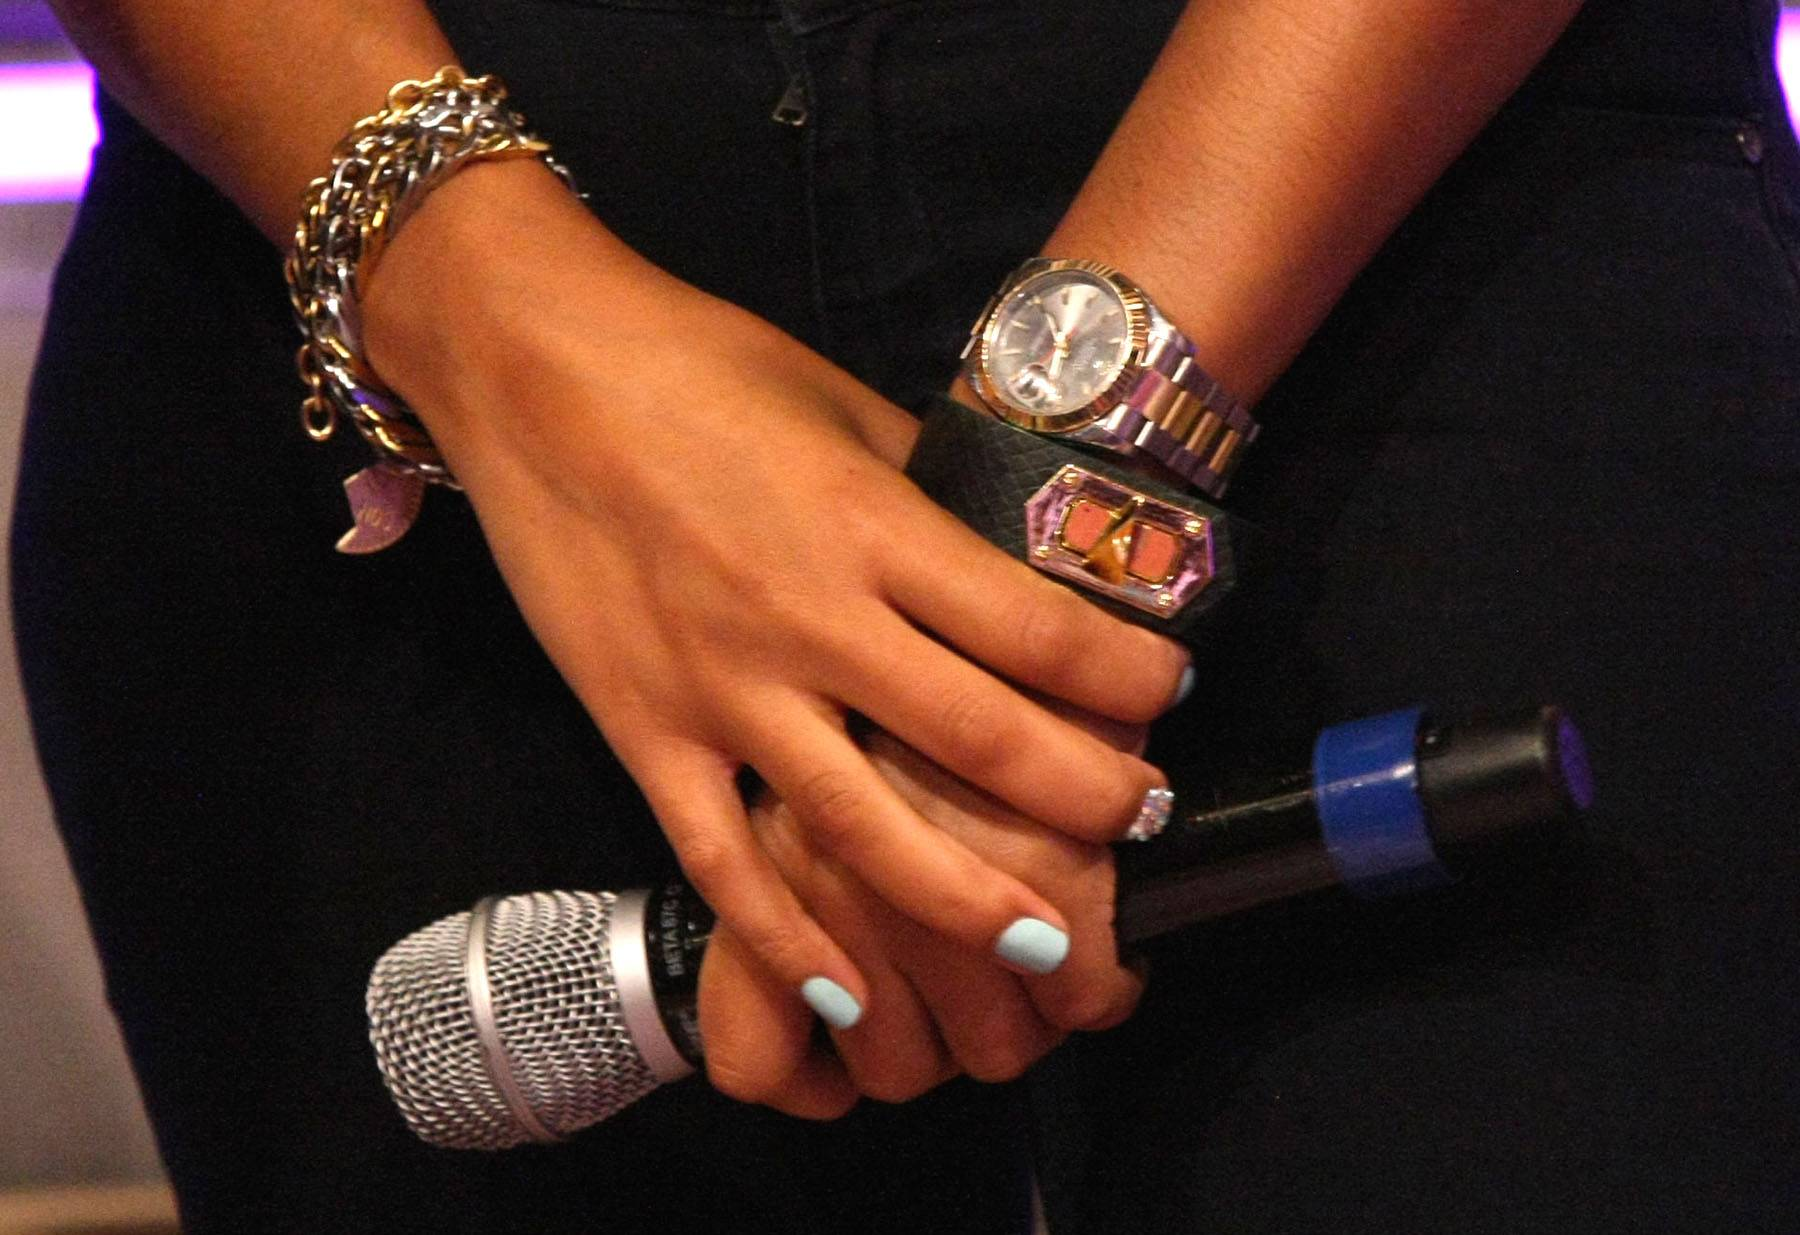 Rock the Mic - Angela Simmons wears some silver jewelry while holding the mic on 106. (Photo: Bennett Raglin/BET/Getty Images for BET)